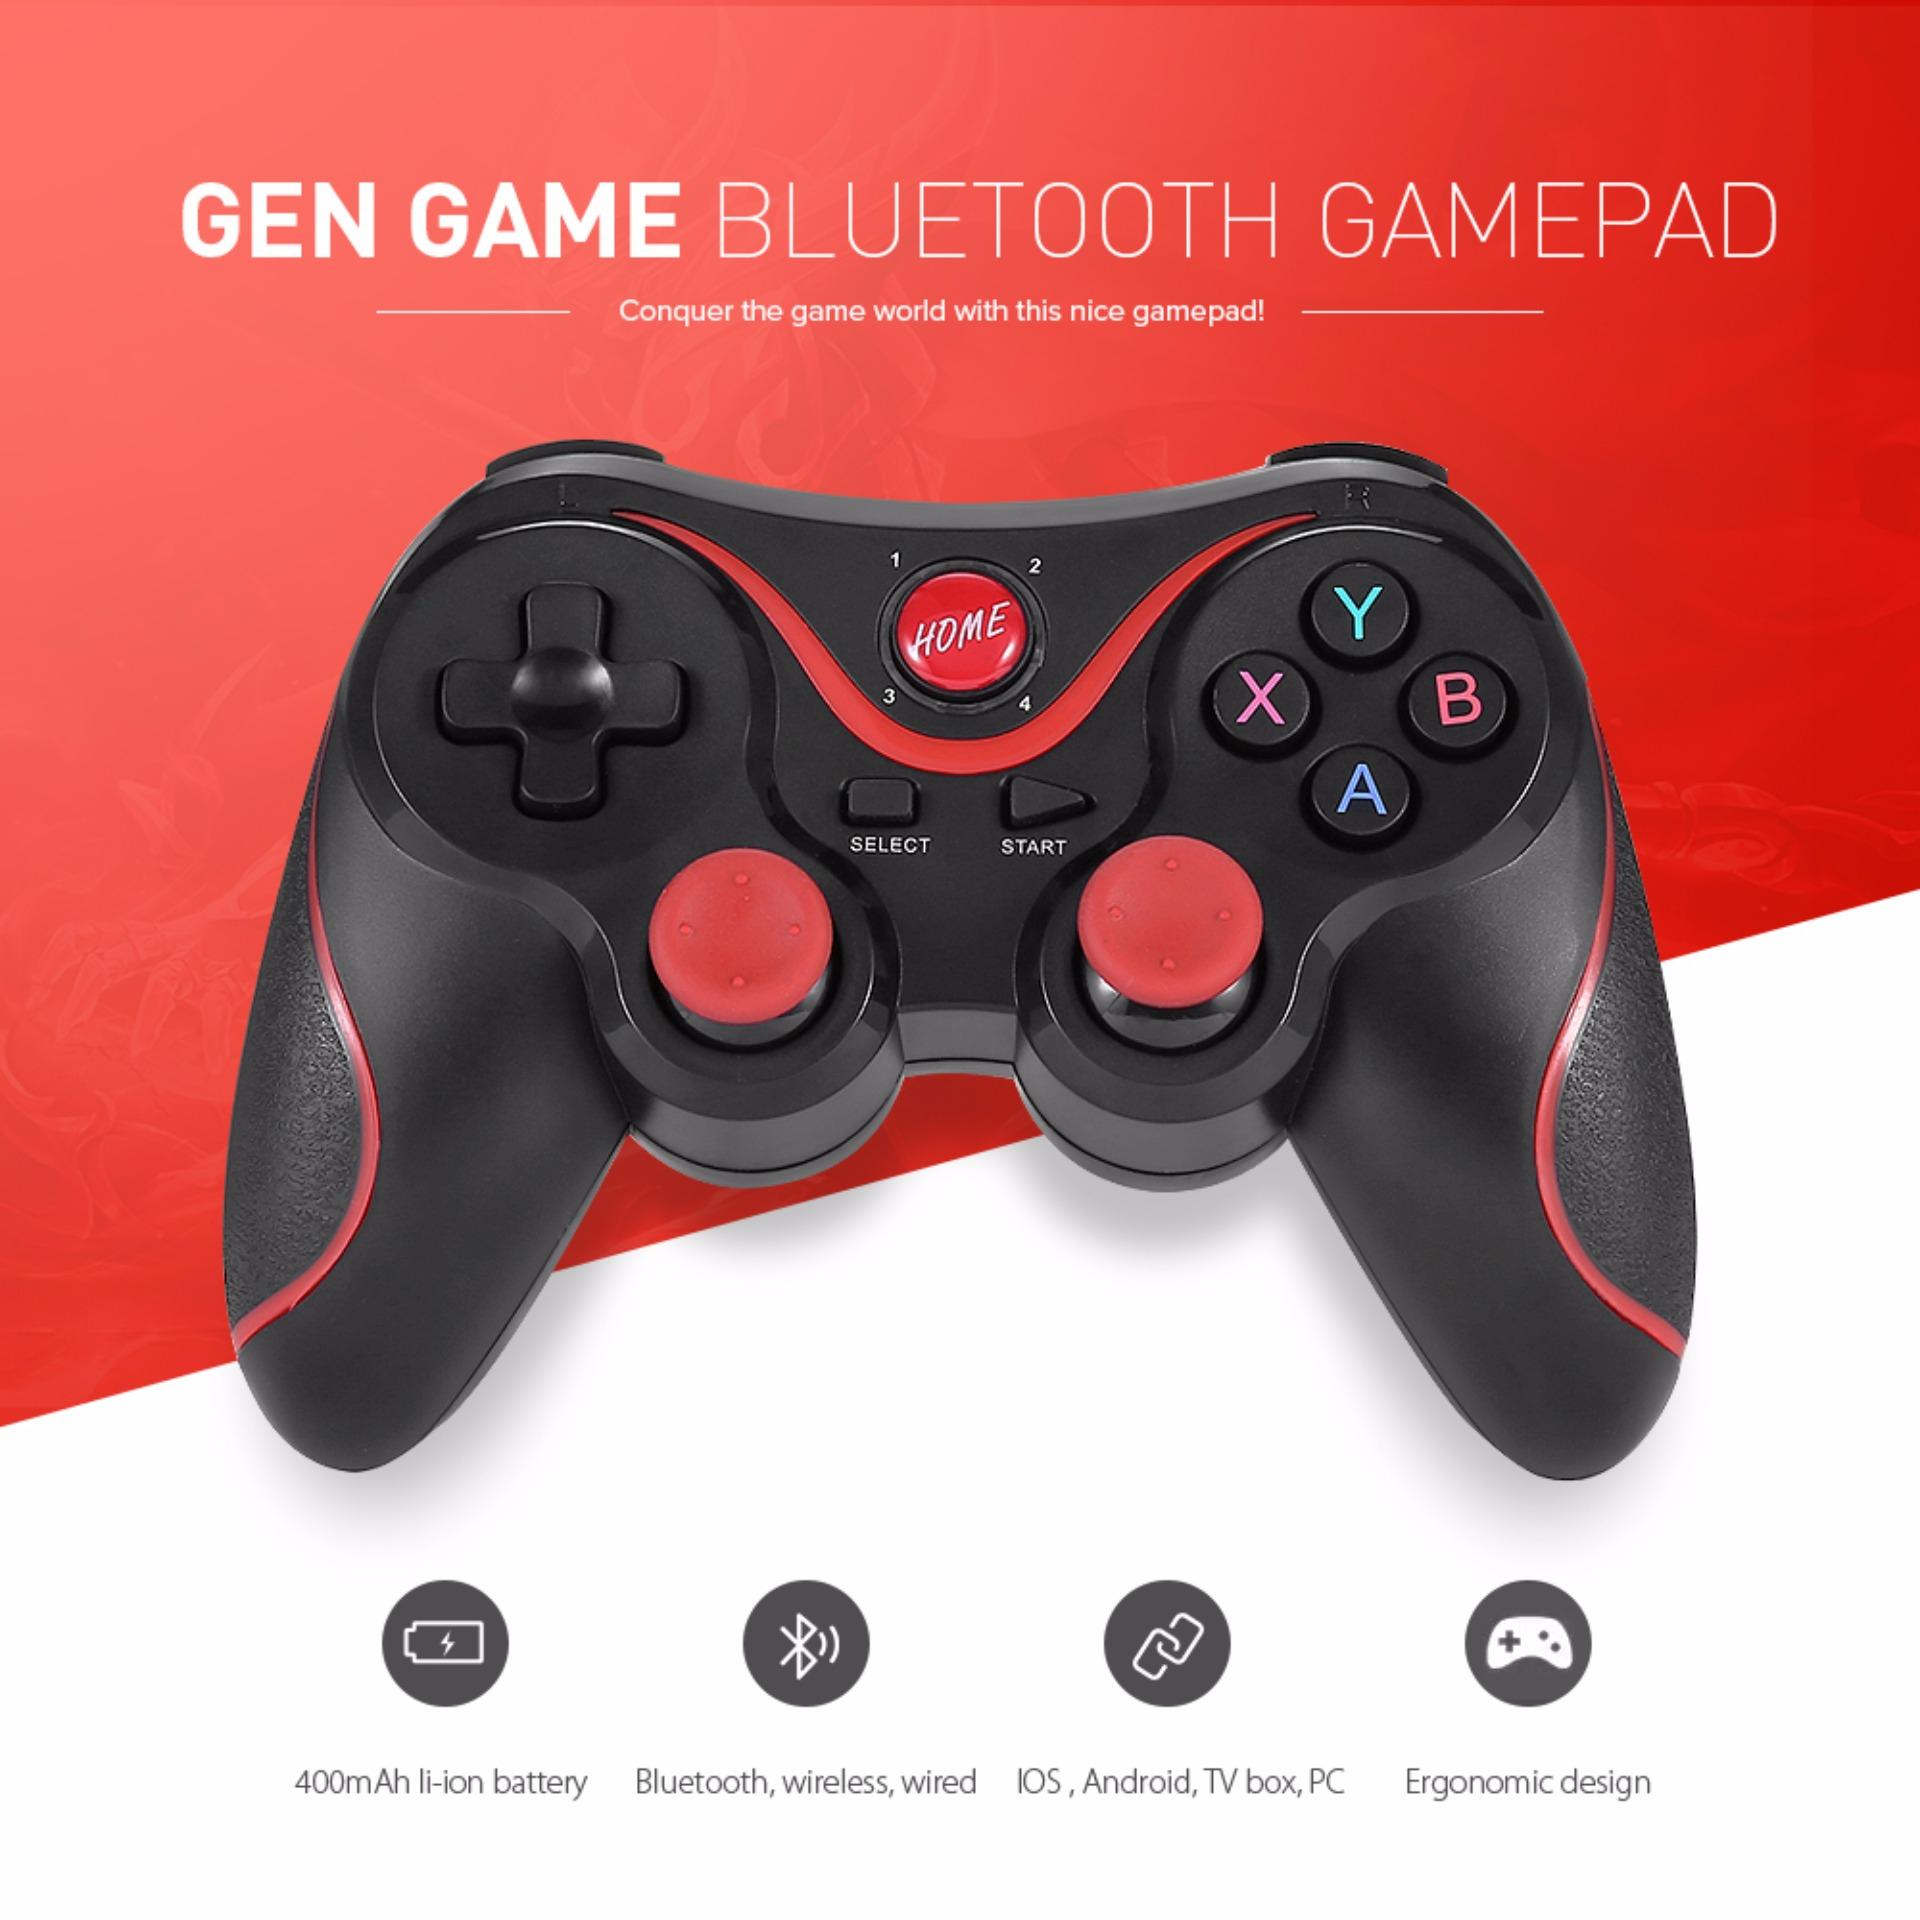 GEN GAME X3 Wireless Bluetooth Gamepad Game Controller for iOS Android Smartphones Tablet Windows PC Mobile